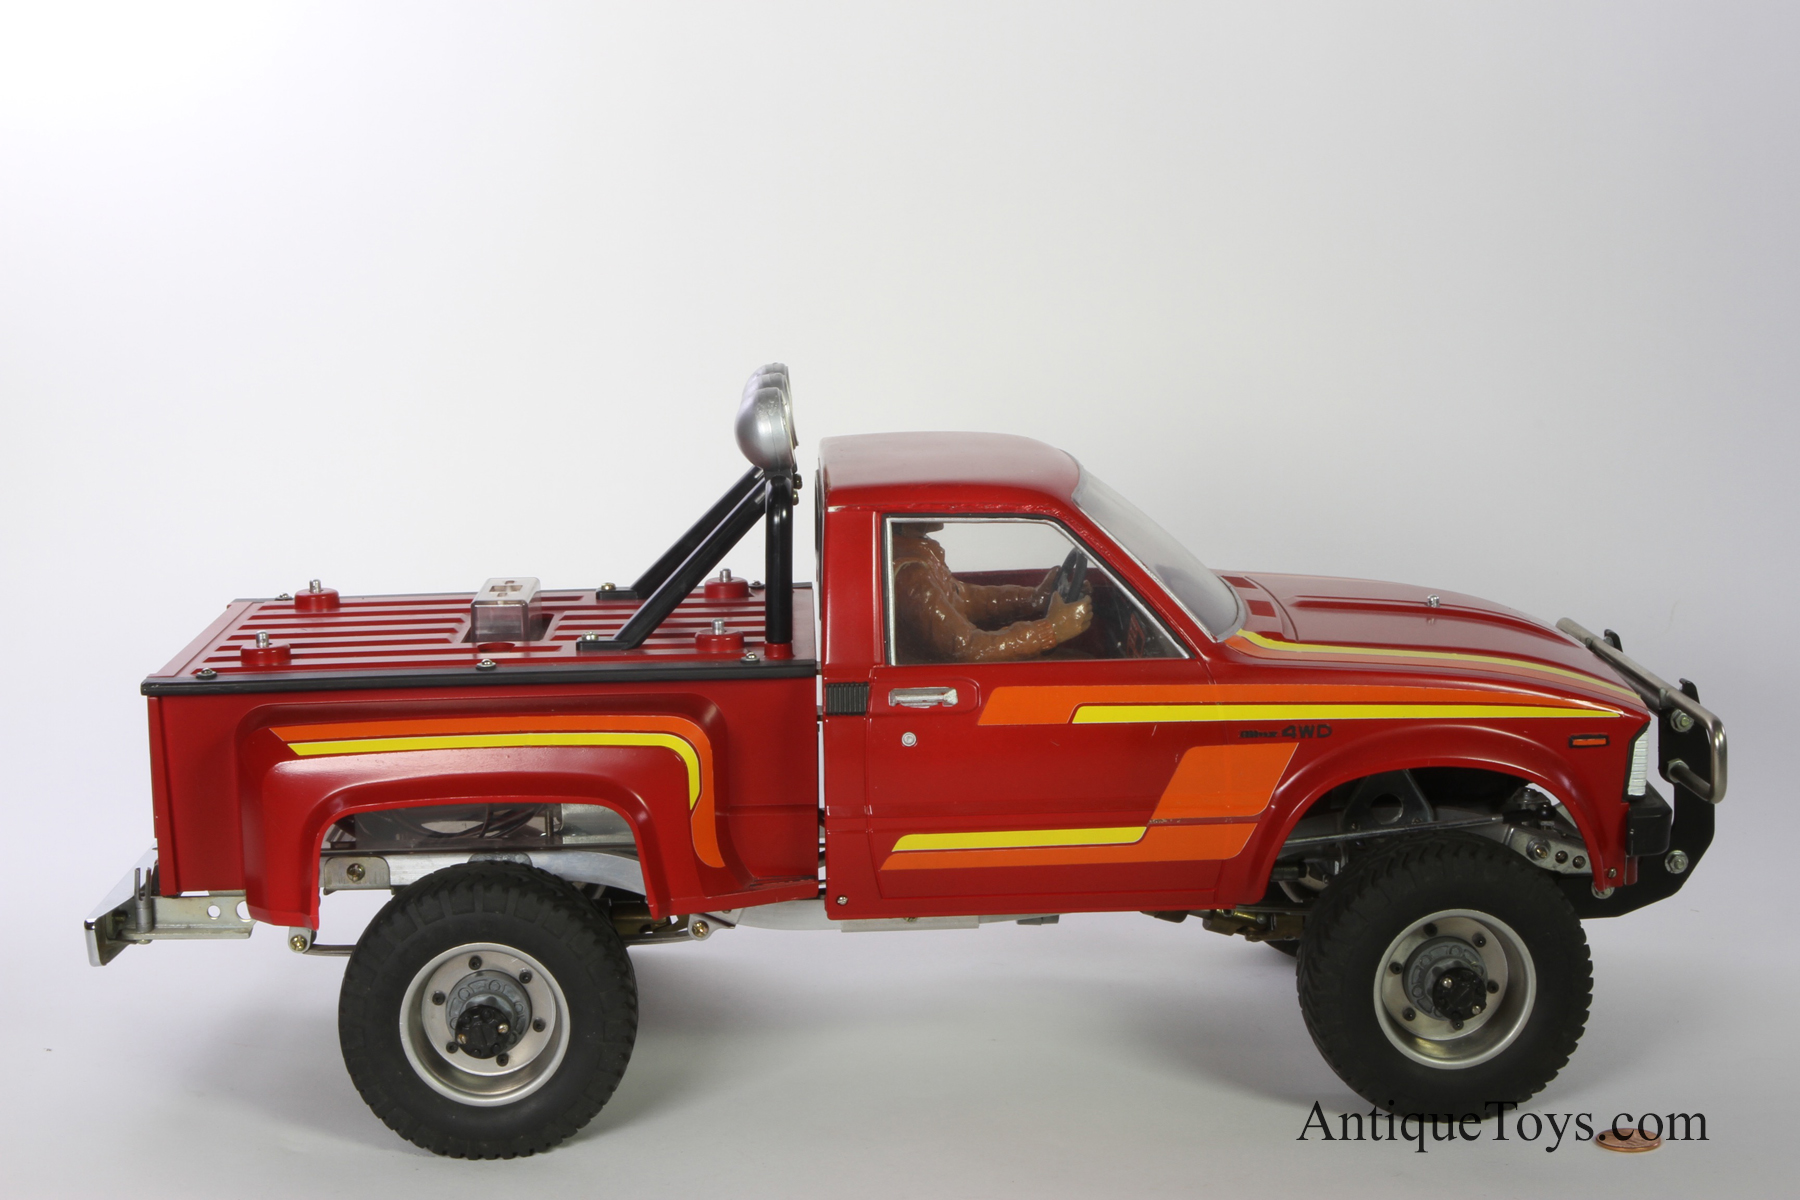 Tamiya Toyota Hilux R/C 4x4 Vintage 1981 *sold* - Antique Toys for Sale